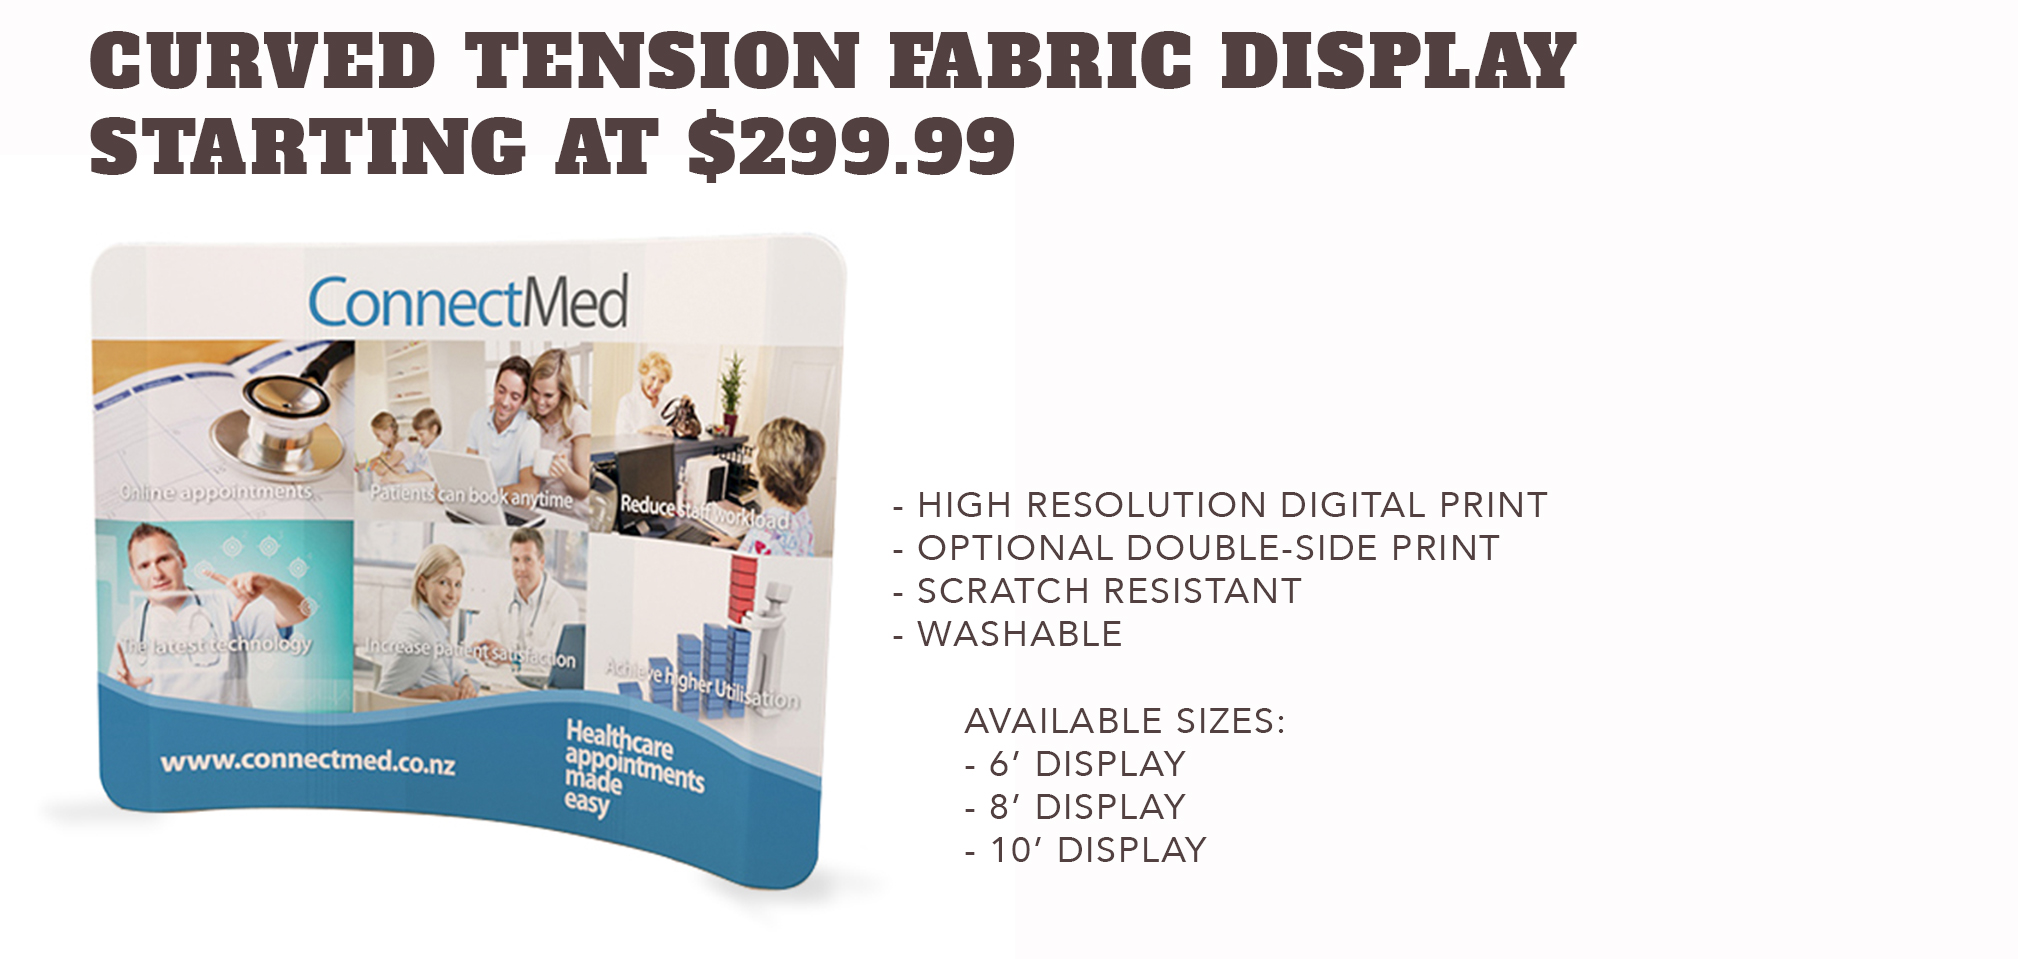 Curved TensionFabric Displays - Starting at $299.99